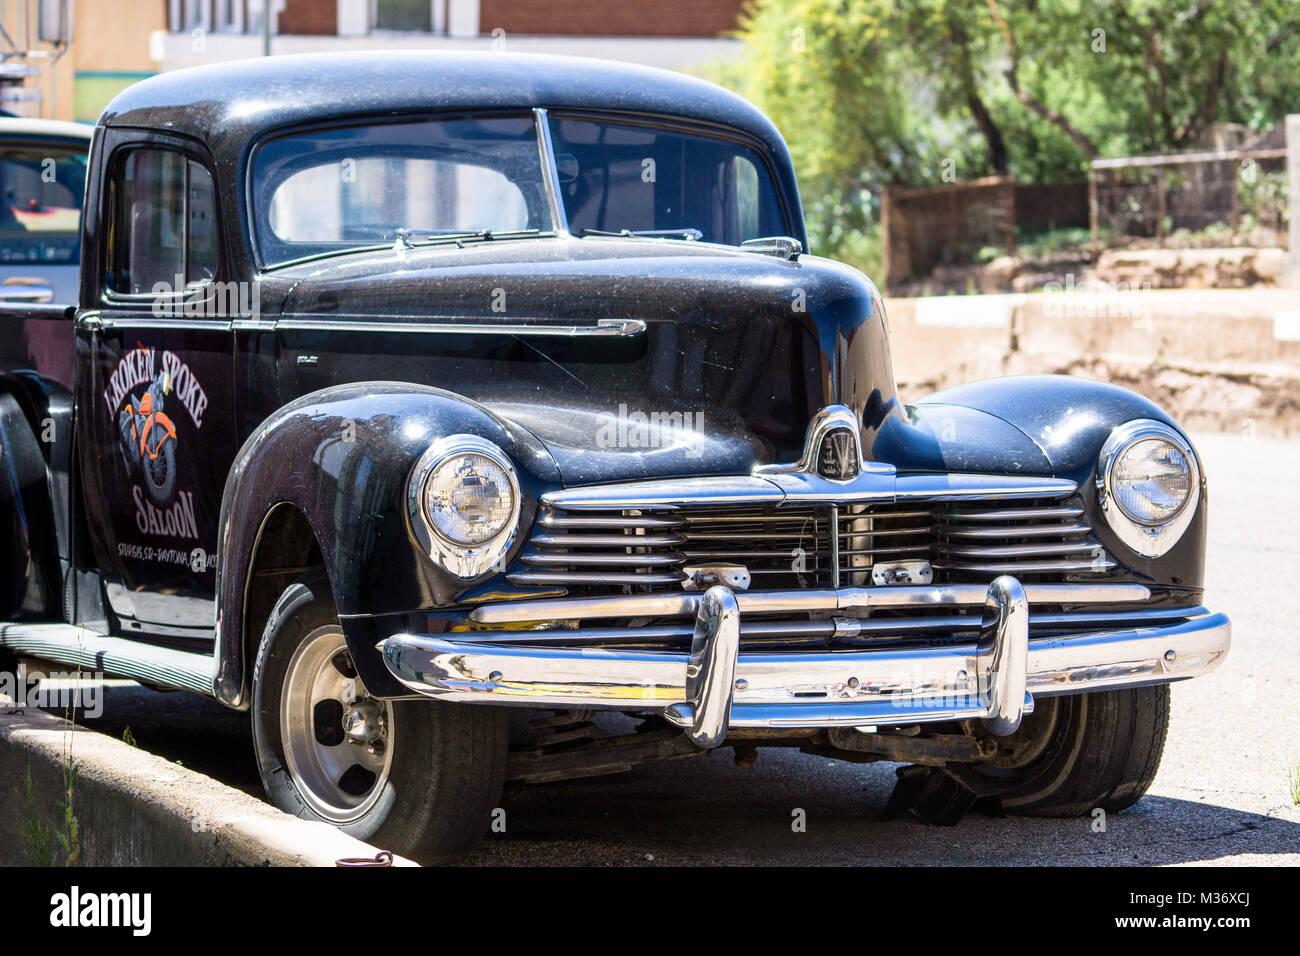 classic old American pick-up truck on an old small-town street in southeastern Arizona near Bisbee - Stock Image